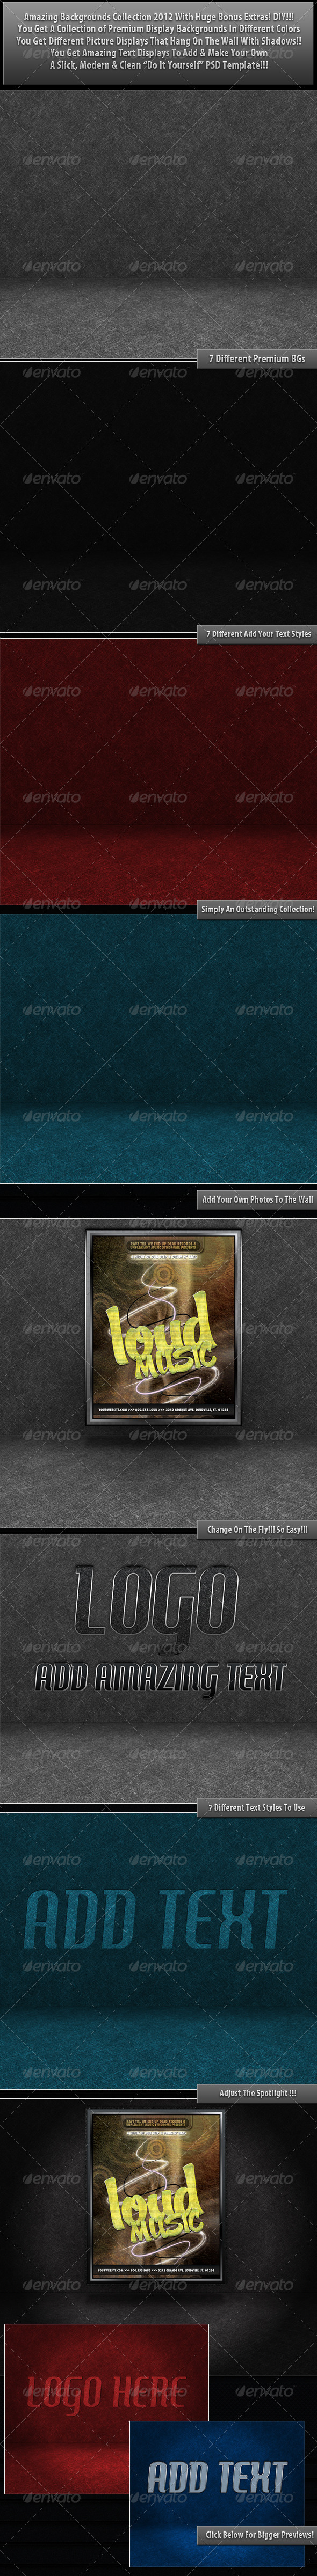 GraphicRiver Add Your Designs Backgrounds 2012 527093